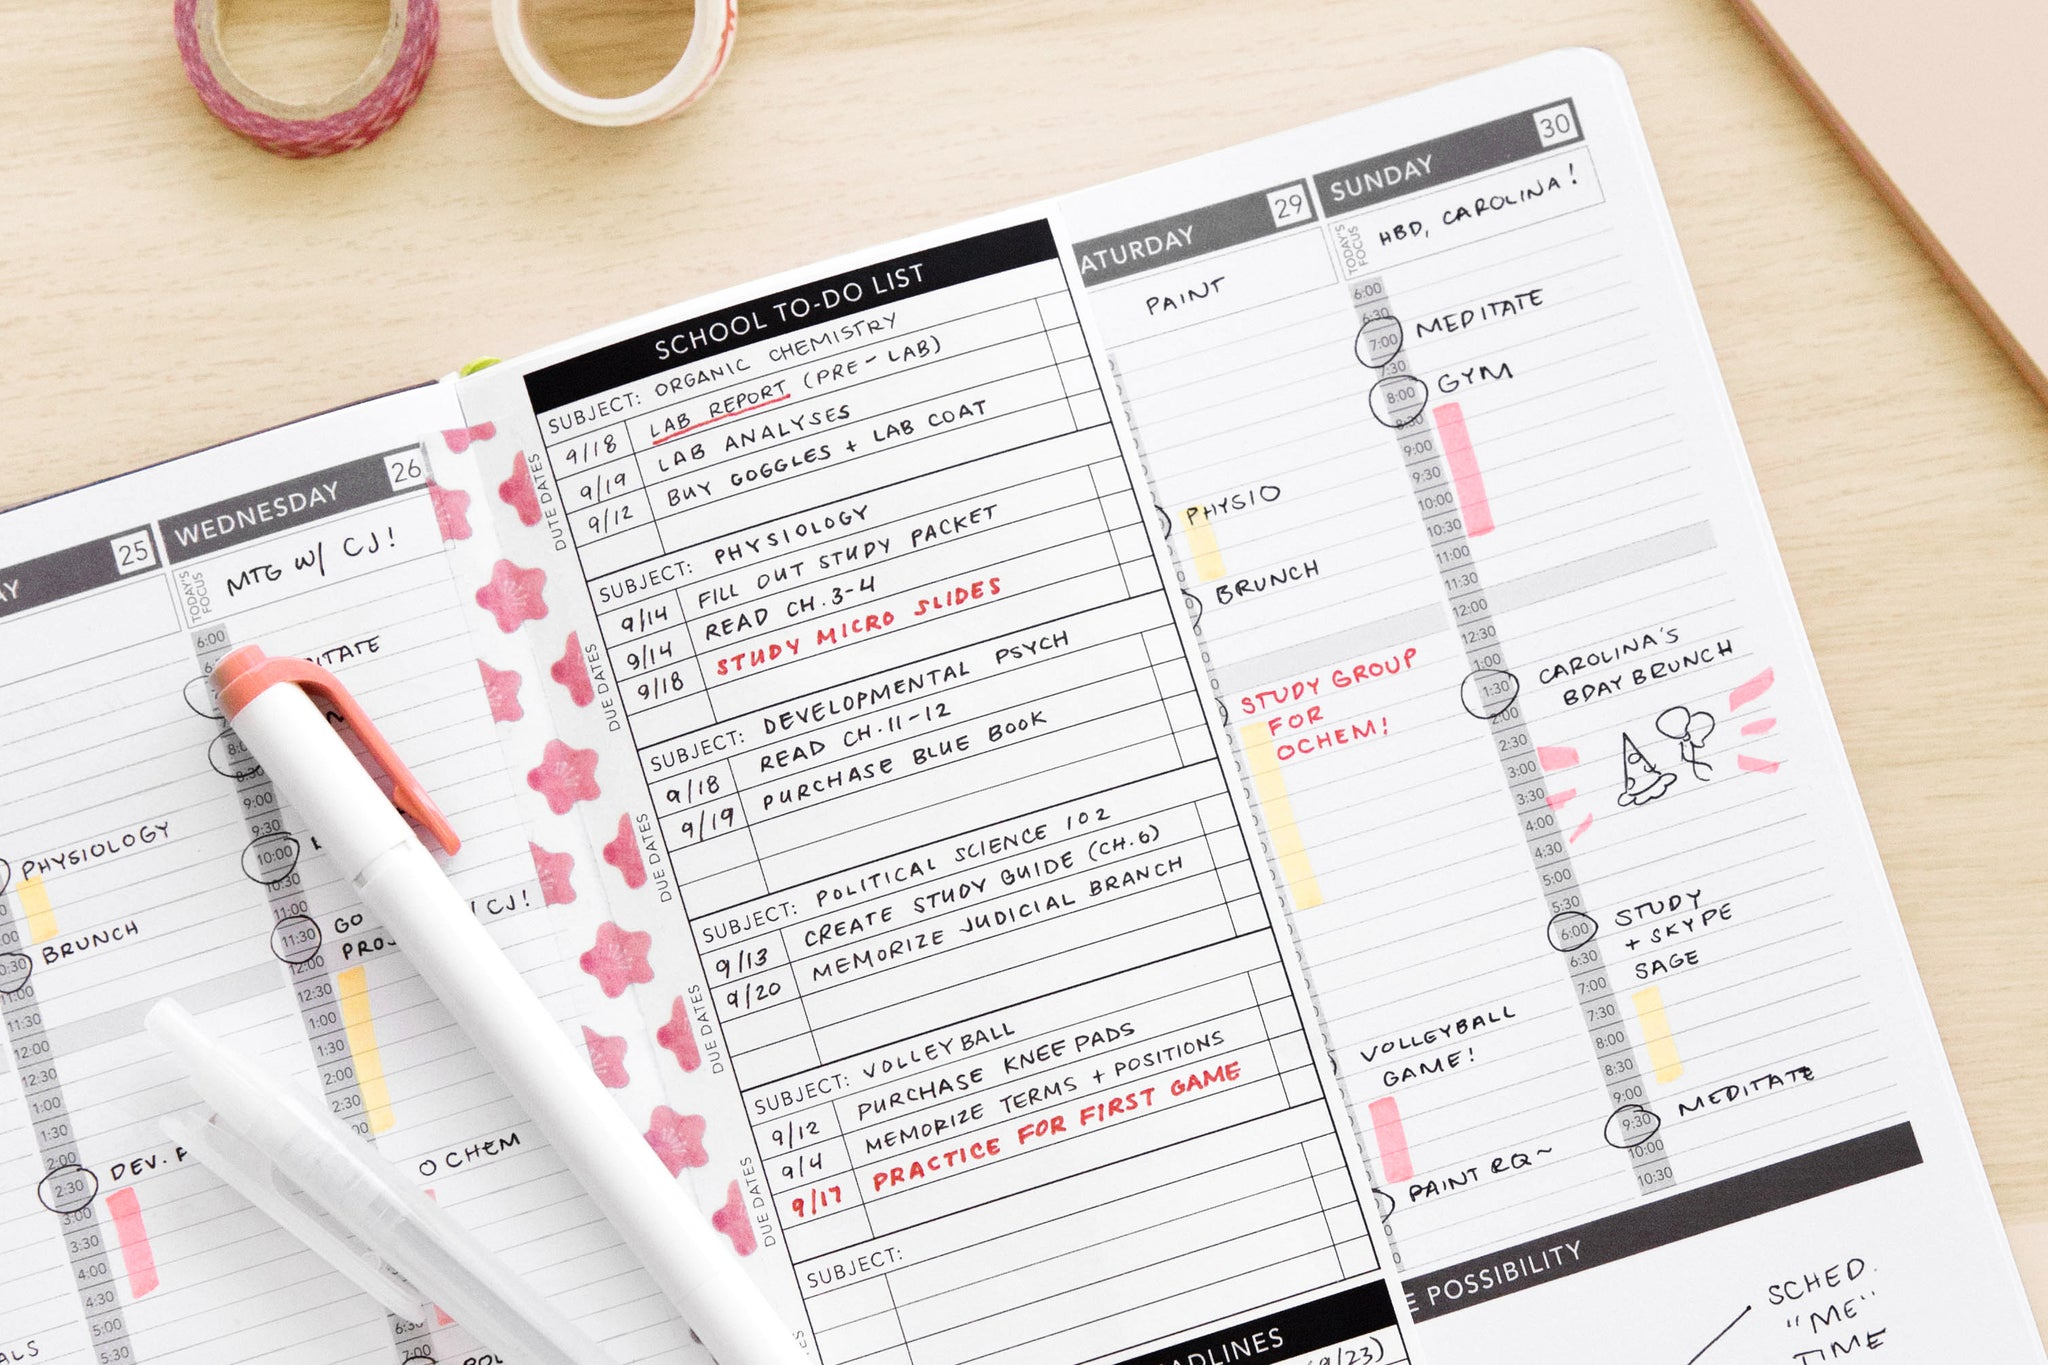 School To Do List printable insert taped inside Passion Planner weekly layout.